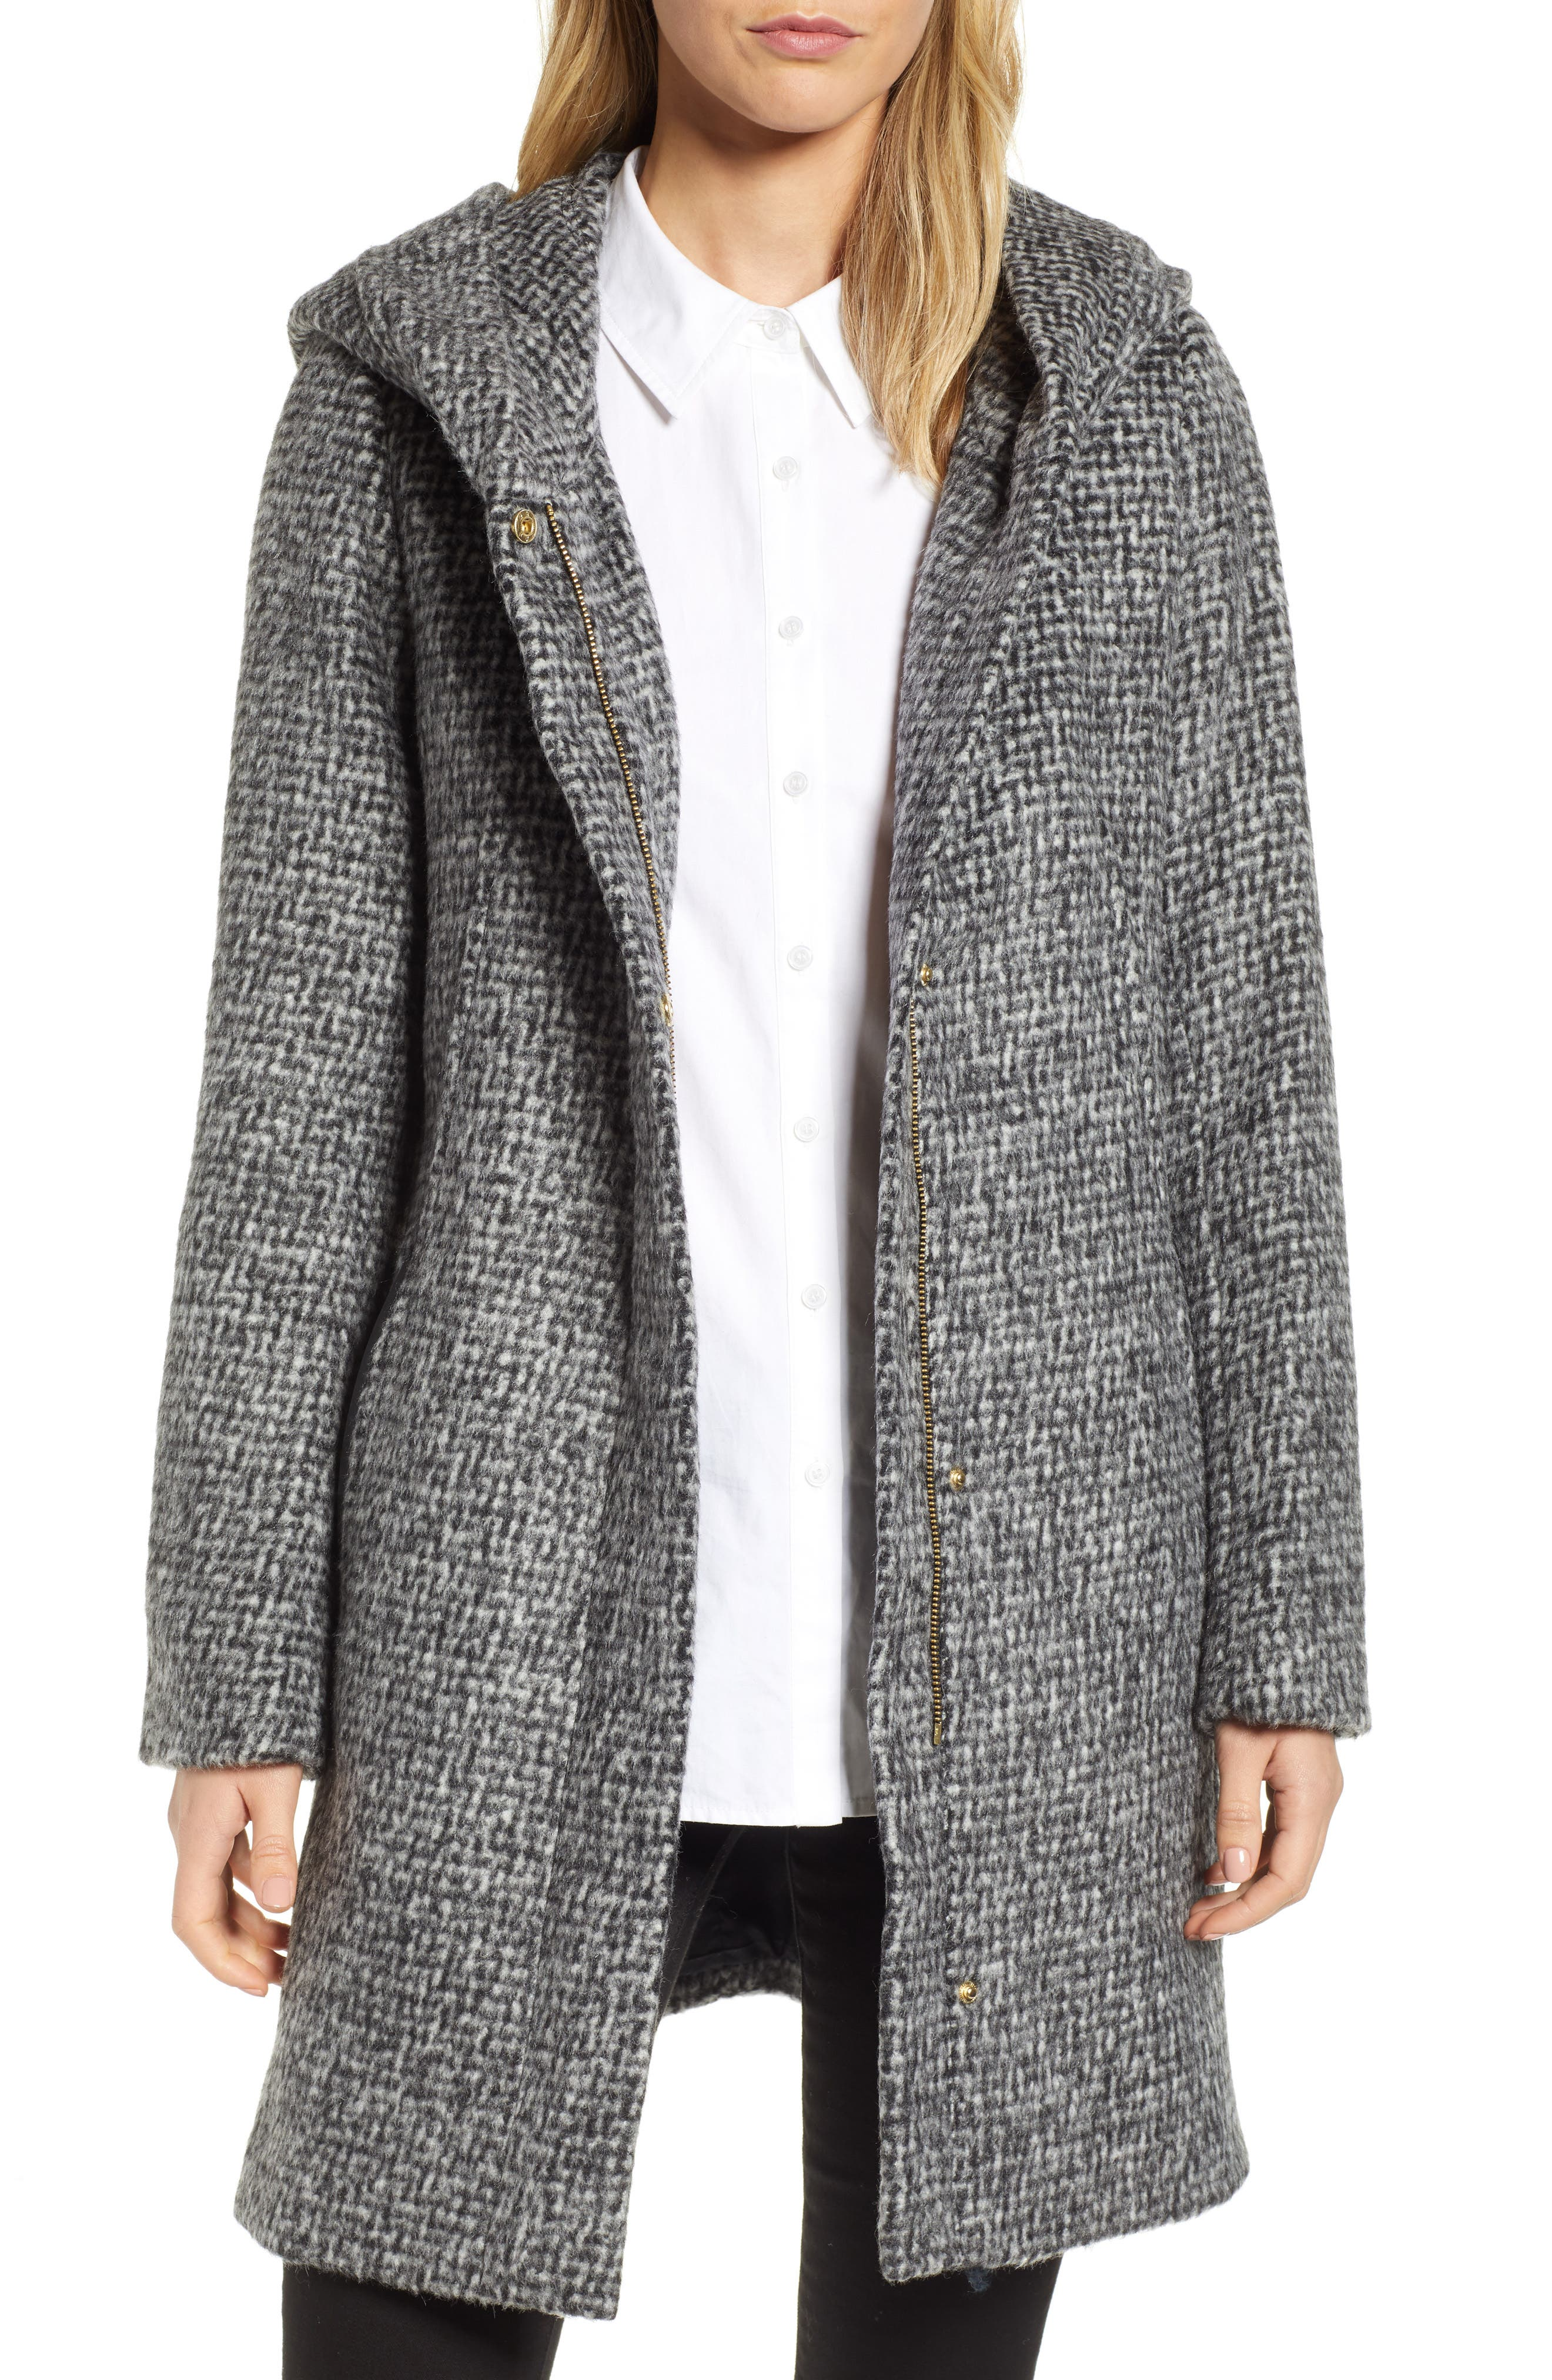 Fuzzy Houndstooth Coat,                             Main thumbnail 1, color,                             BLACK/ WHITE